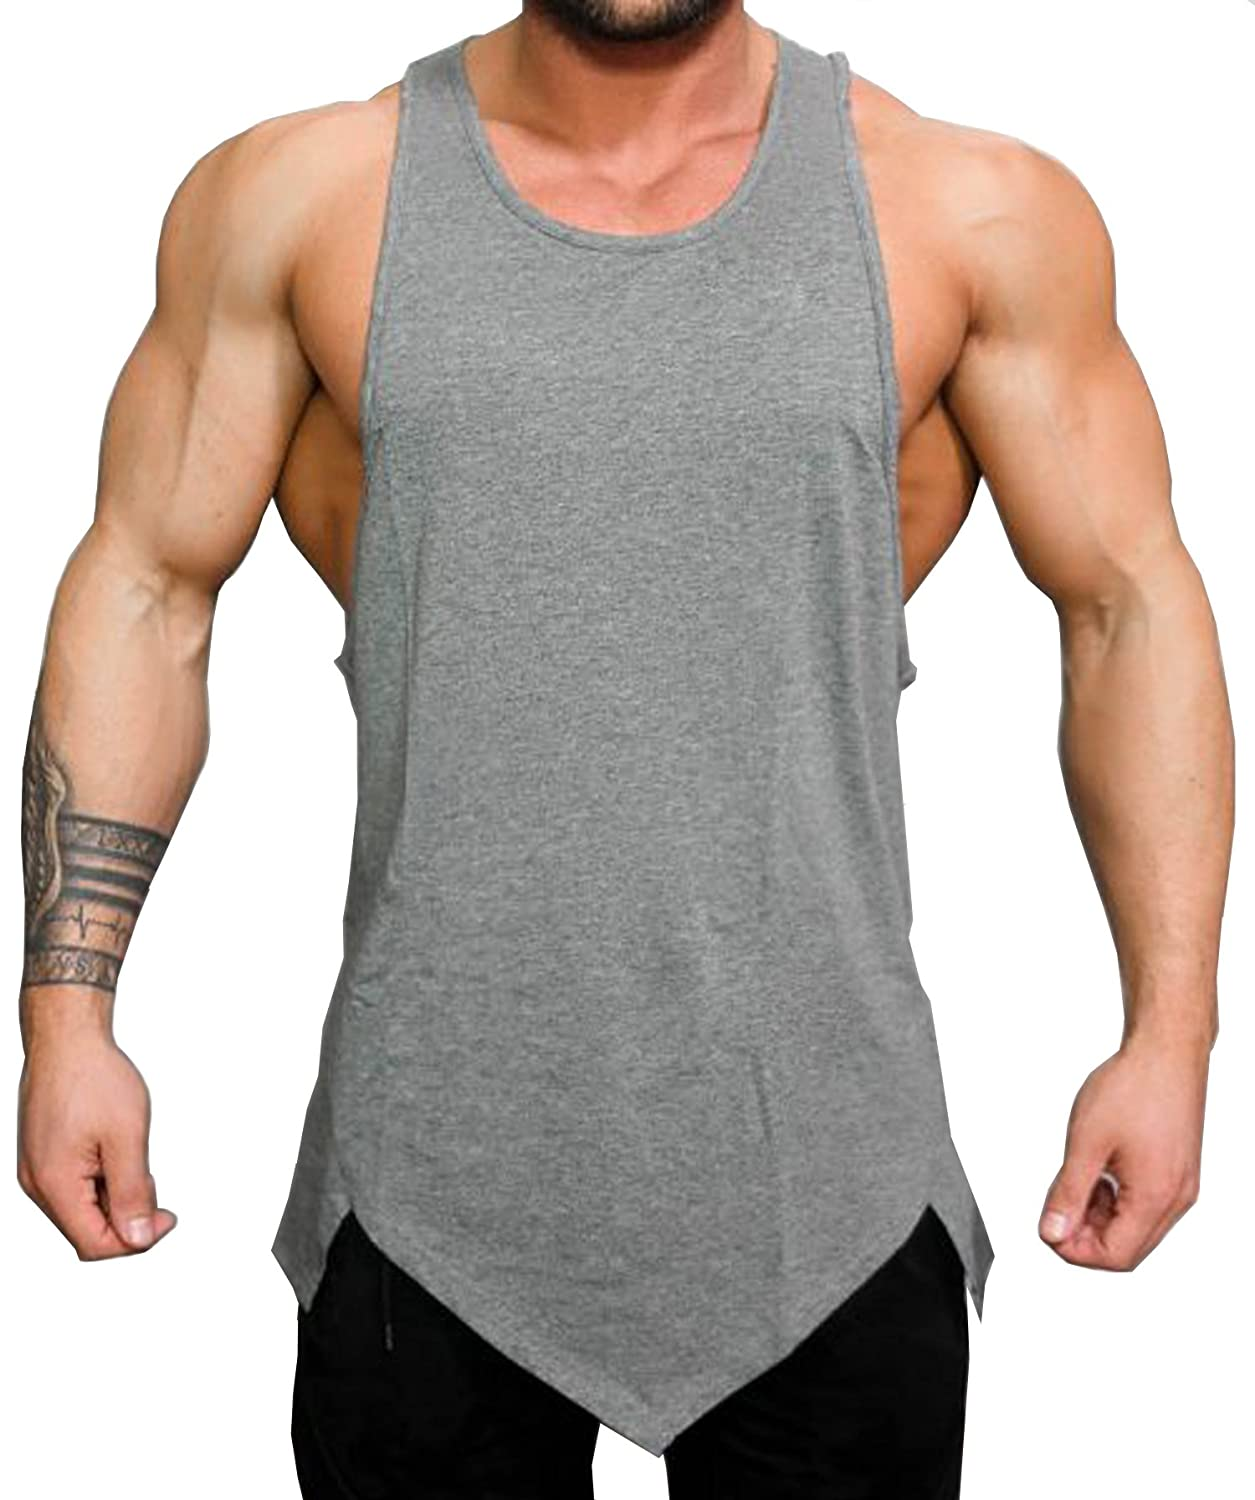 3541ba15 Made from superior quality lightweight cotton blend fabric, soft and  comfortable, you can be worn everyday to help you keep you body and muscle  cool and dry